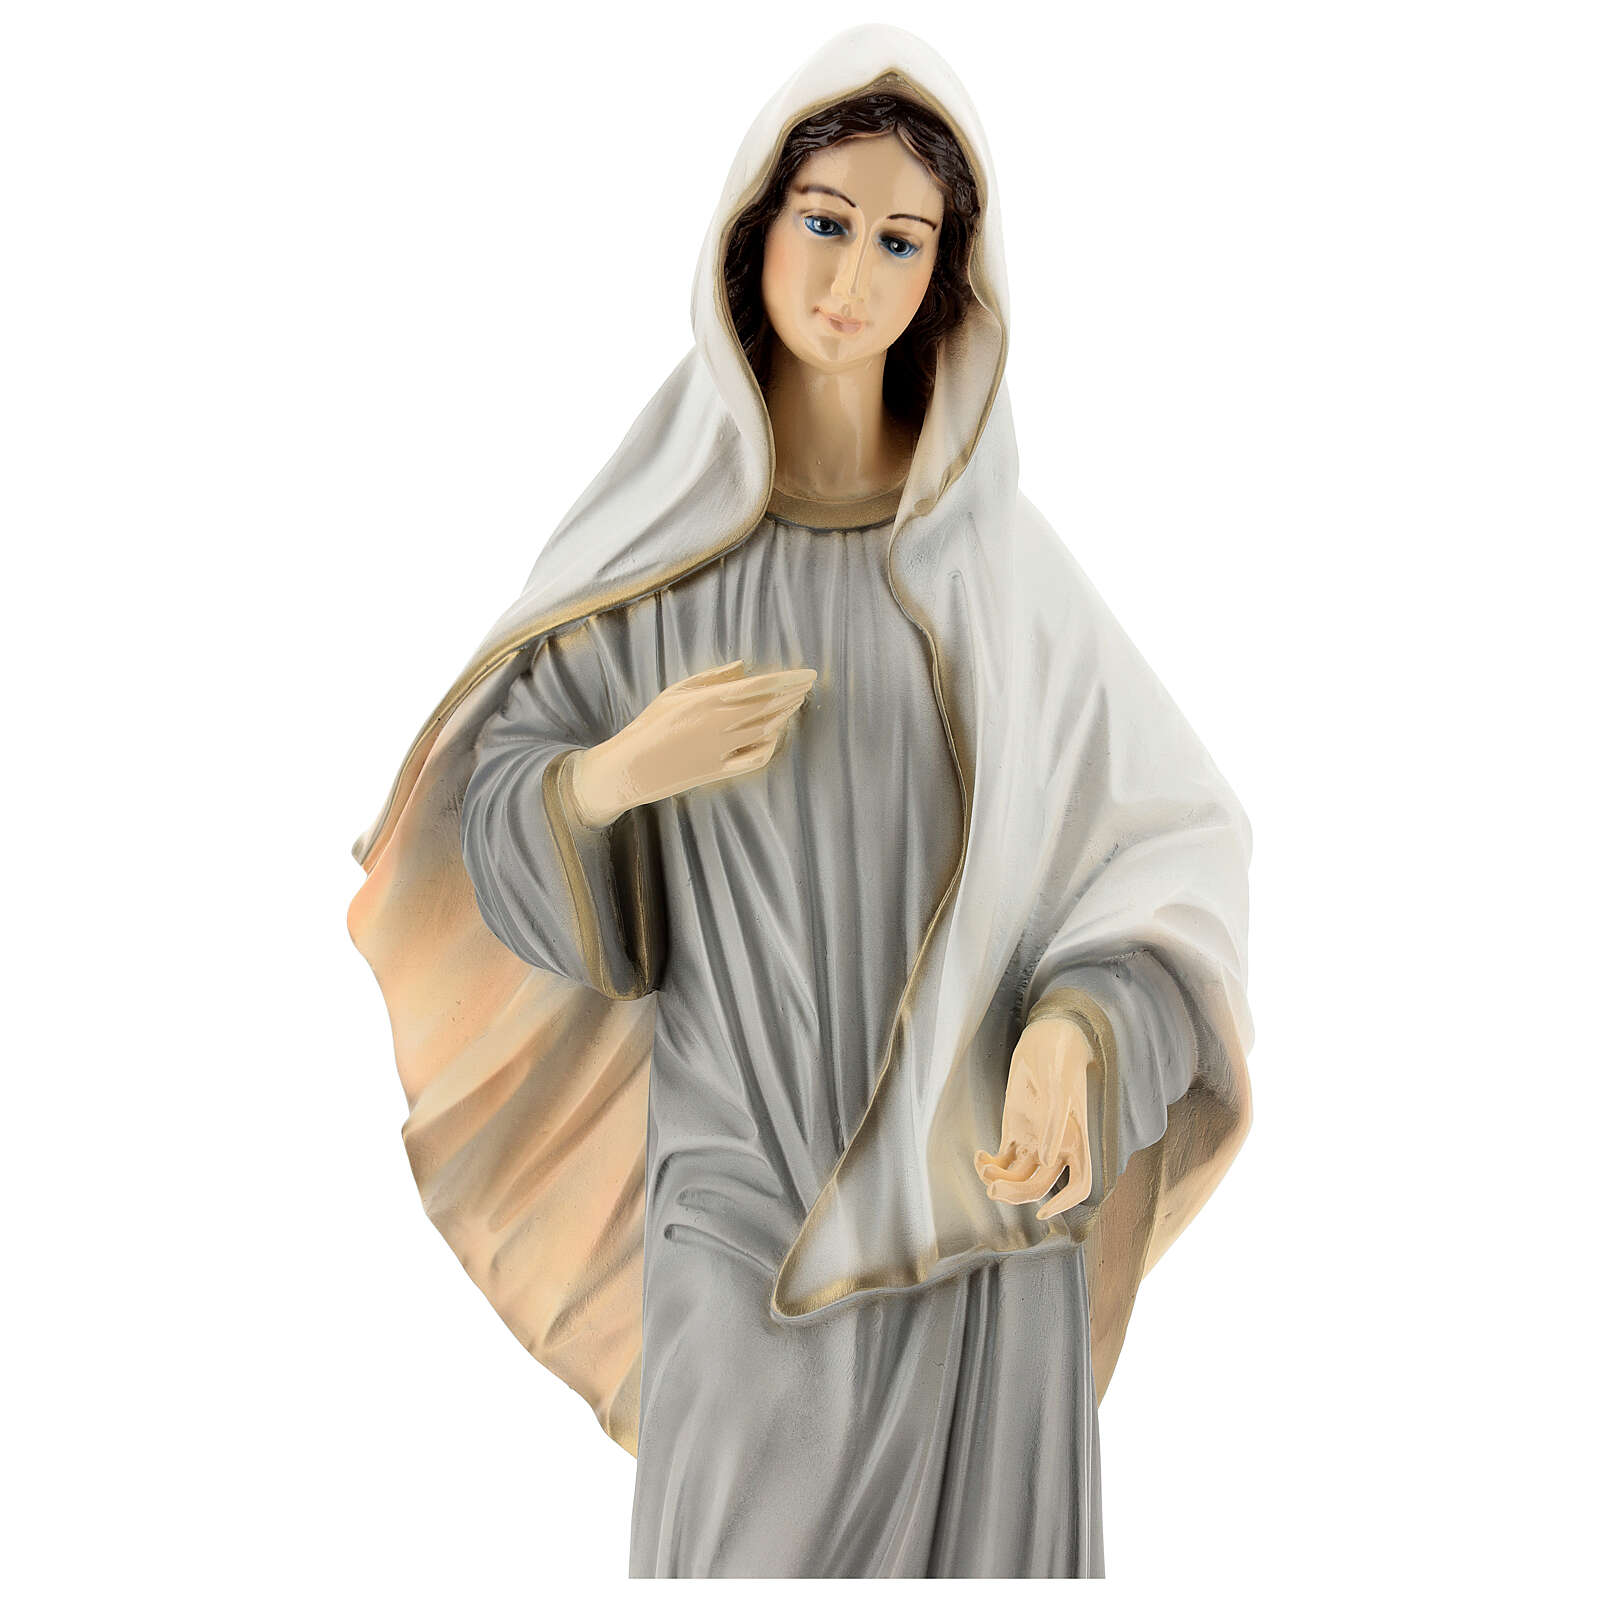 Statue of Lady of Medjugorje grey tunic reconstituted marble 60 cm OUTDOORS 4